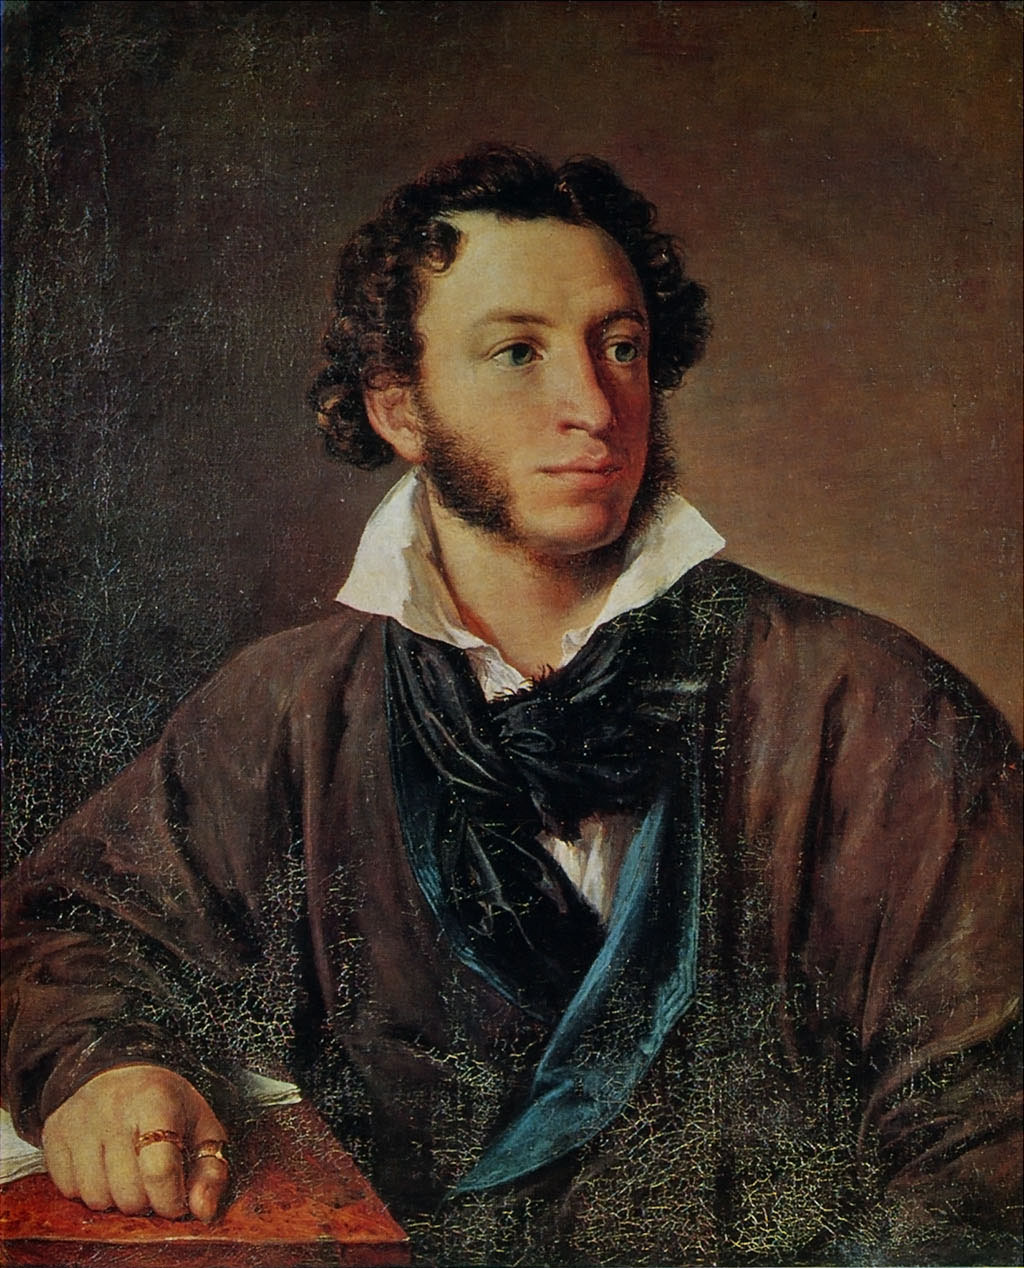 The portrait of Alexander Sergeyevich Pushkin by Vasily Tropinin